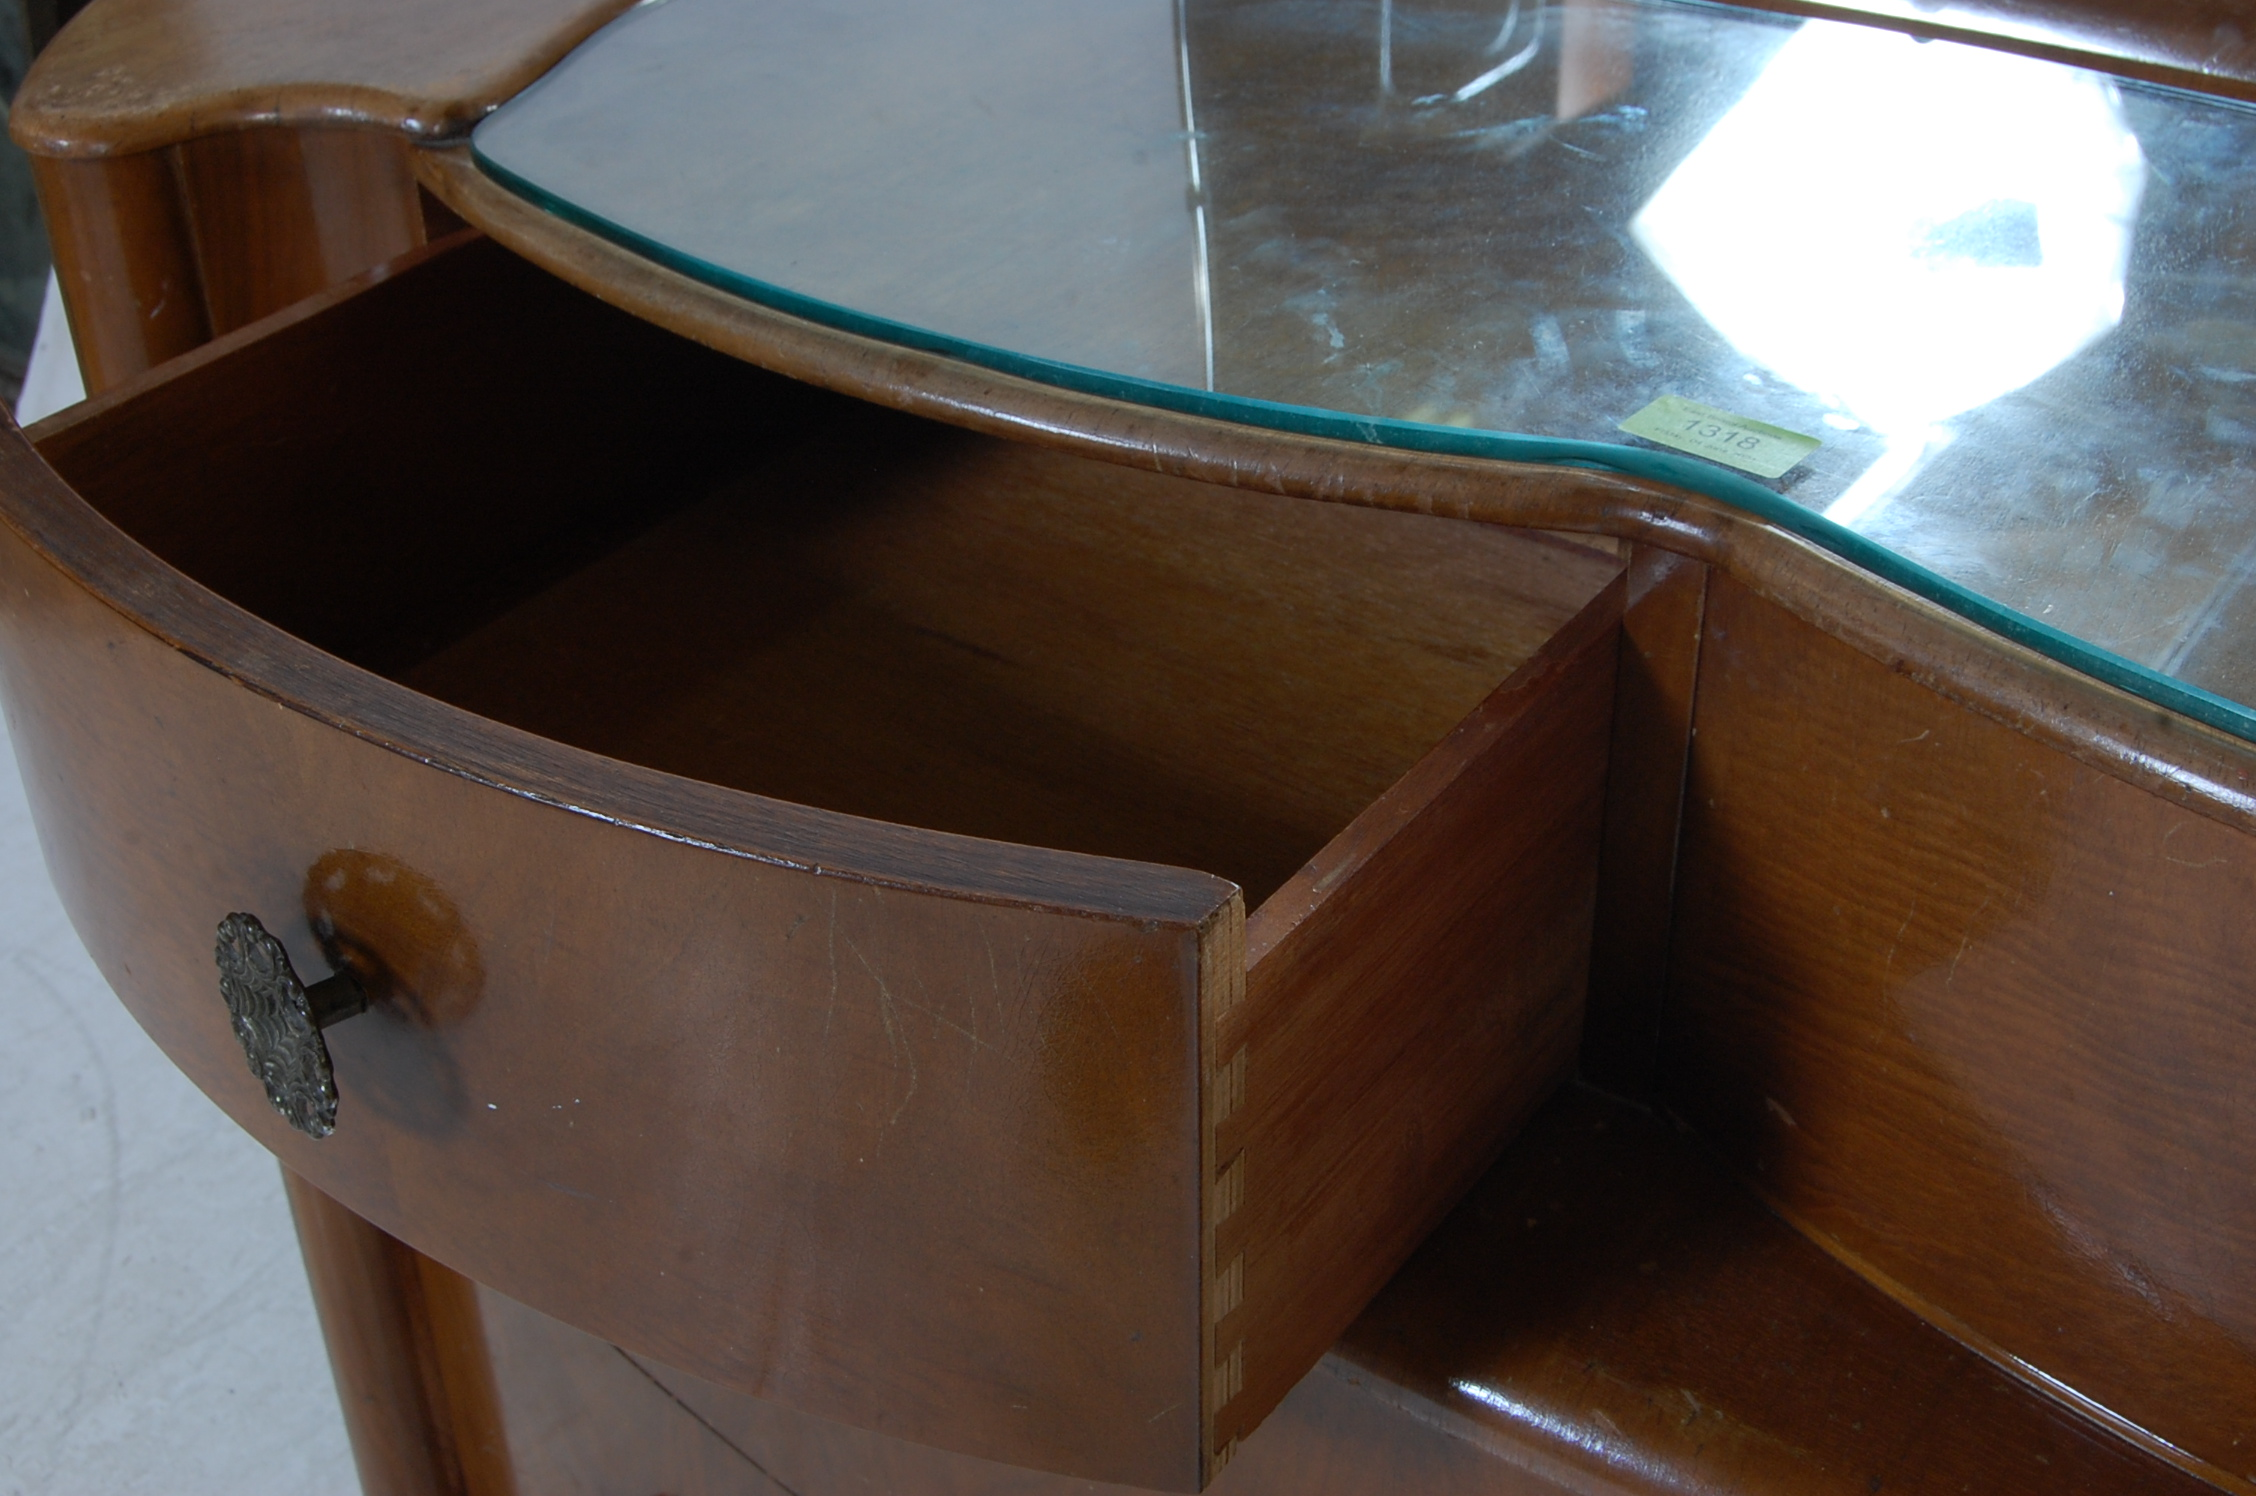 1950'S ART DECO STYLE WALNUT DRESSING TABLE - Image 5 of 5